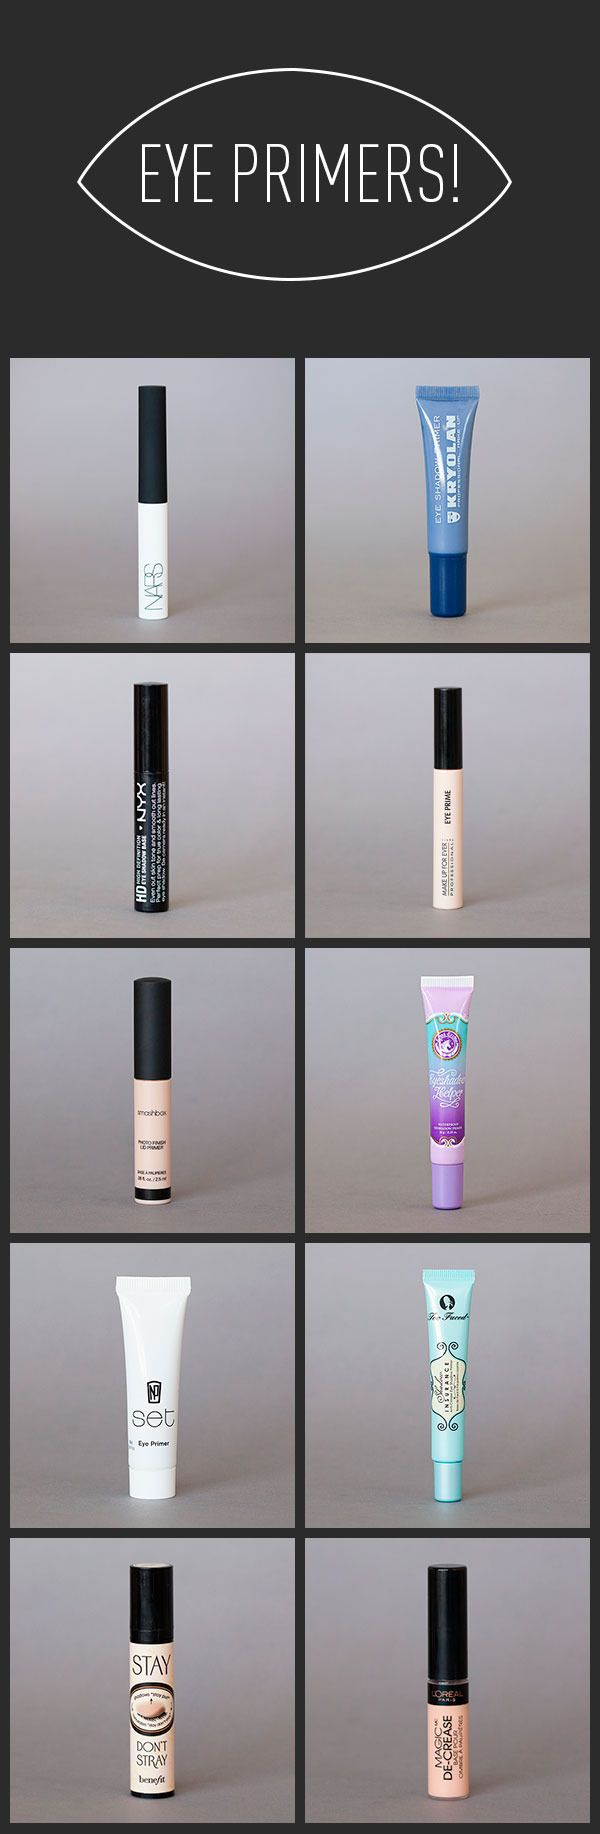 Find The Best Shadow Primer For You!